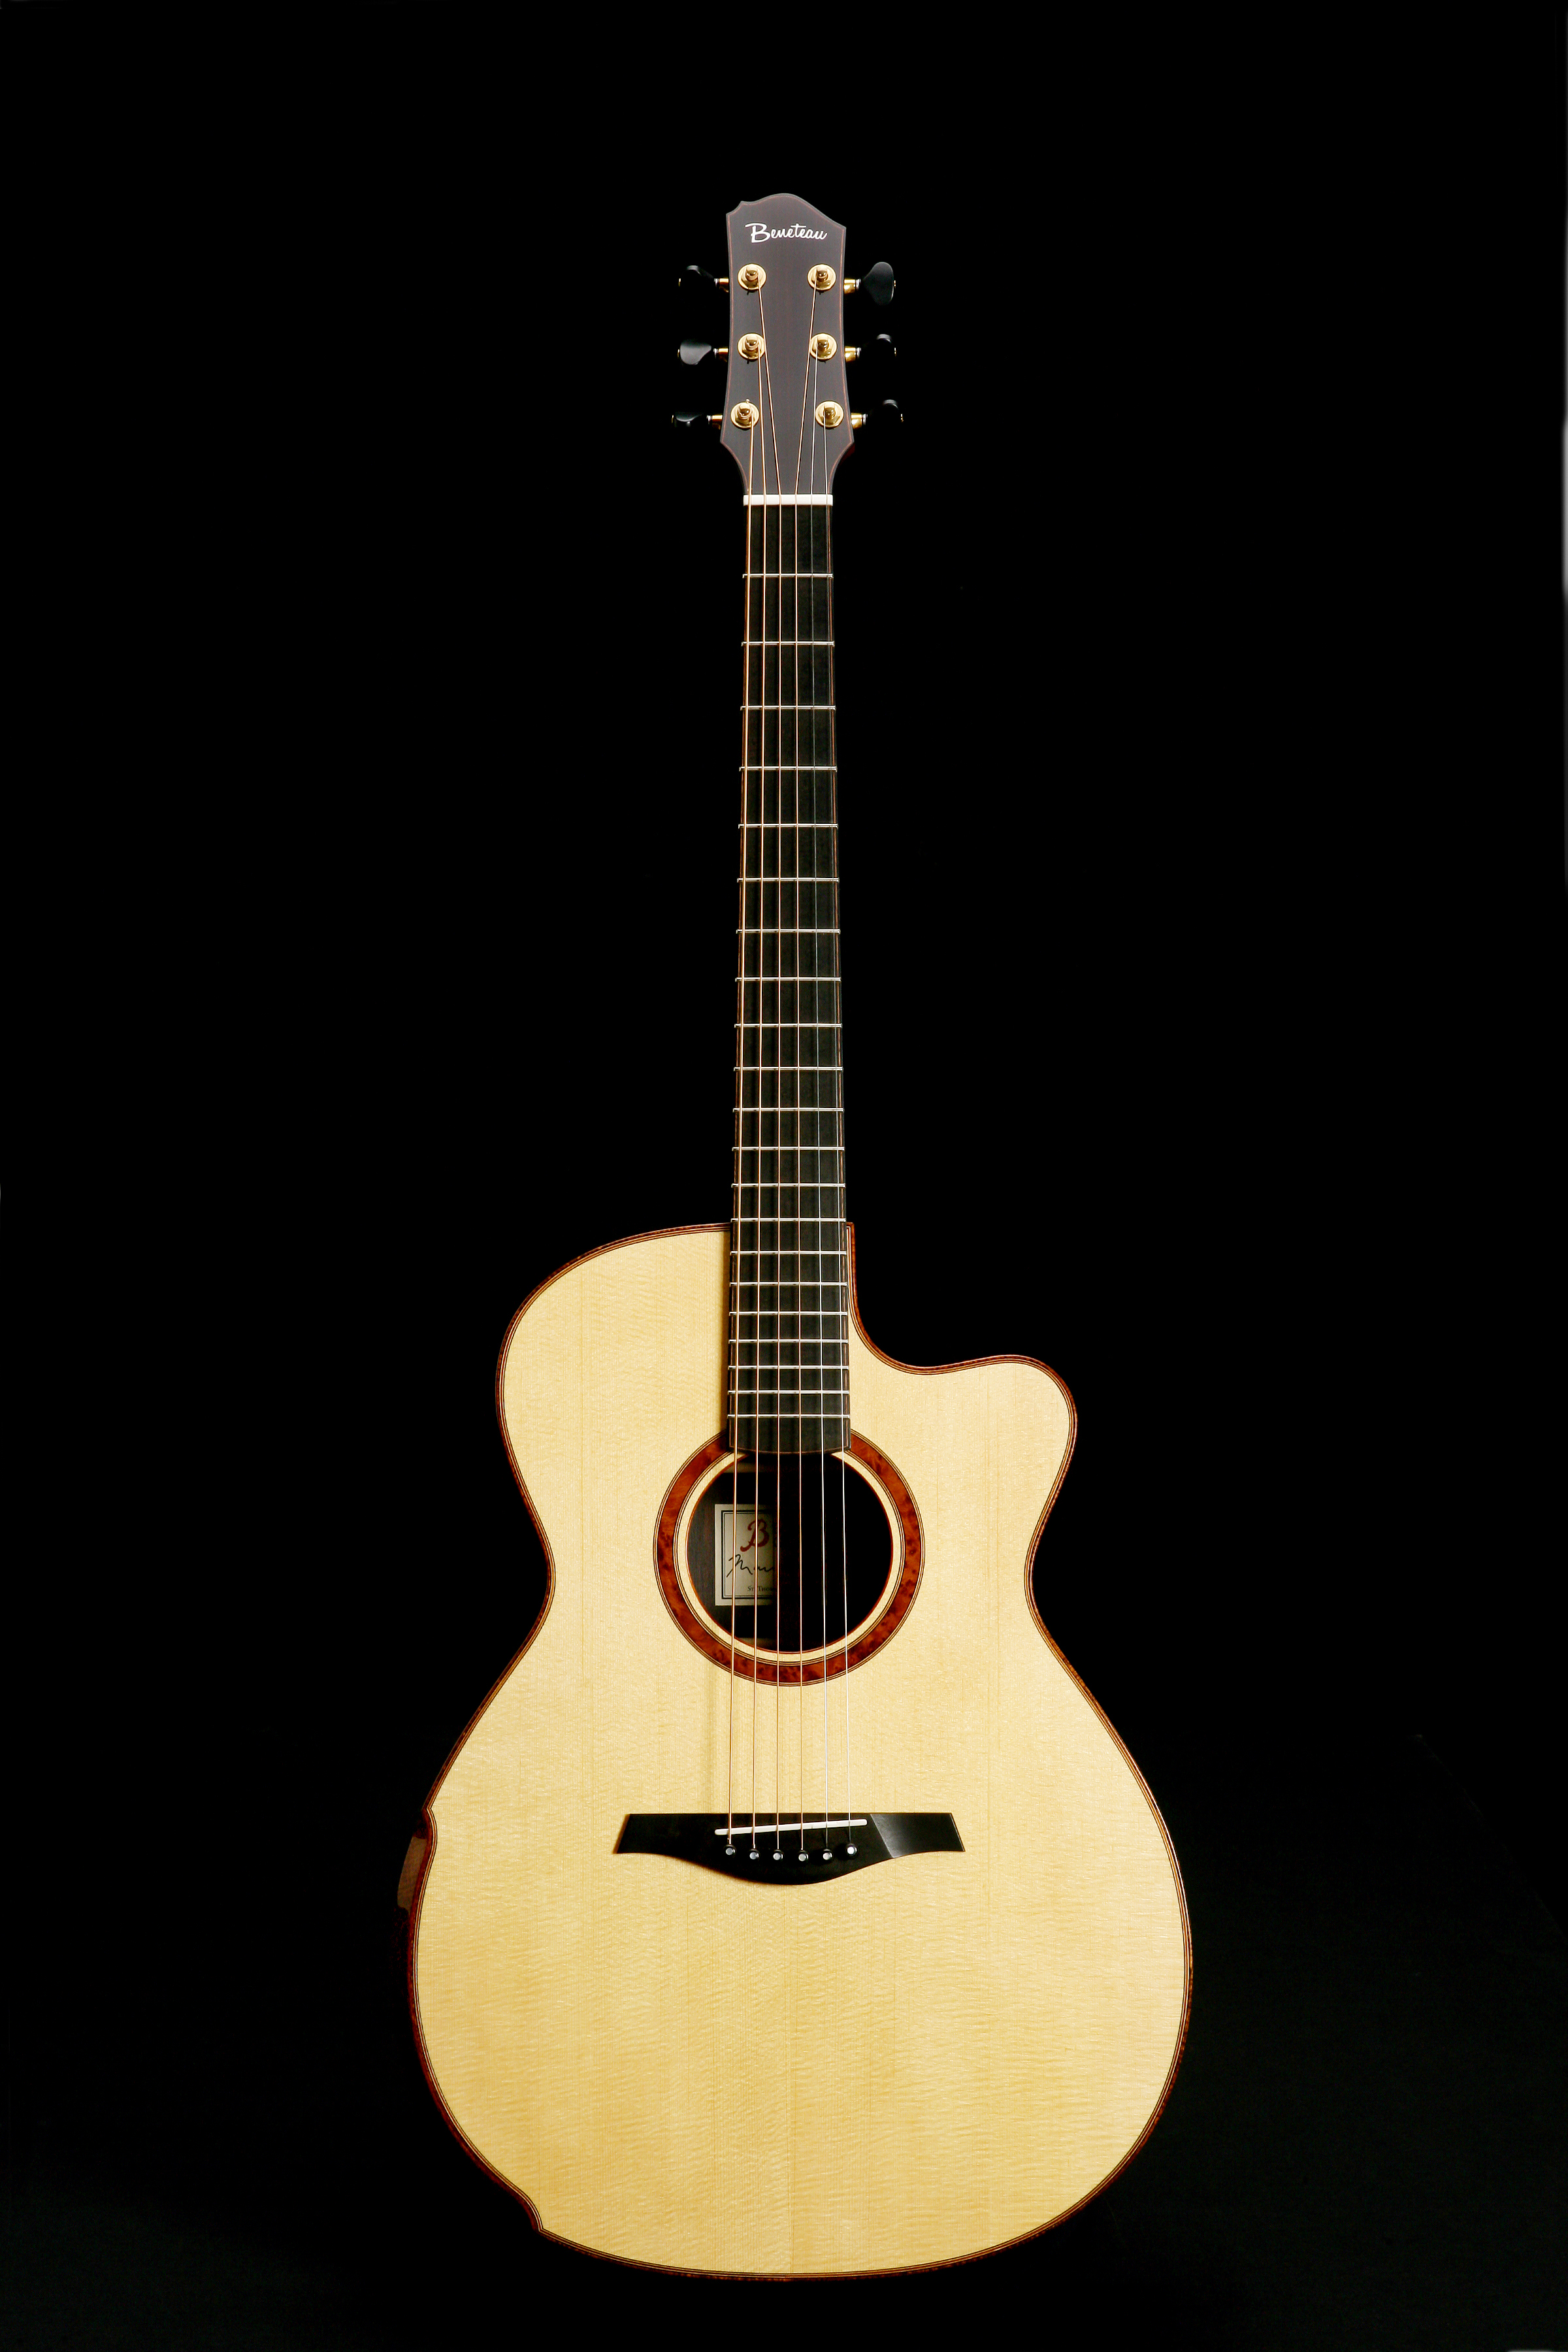 Orchestra Model (OM) - This is arguably the ultimate fingerstyle guitar with strong clear mids and highs. The 15